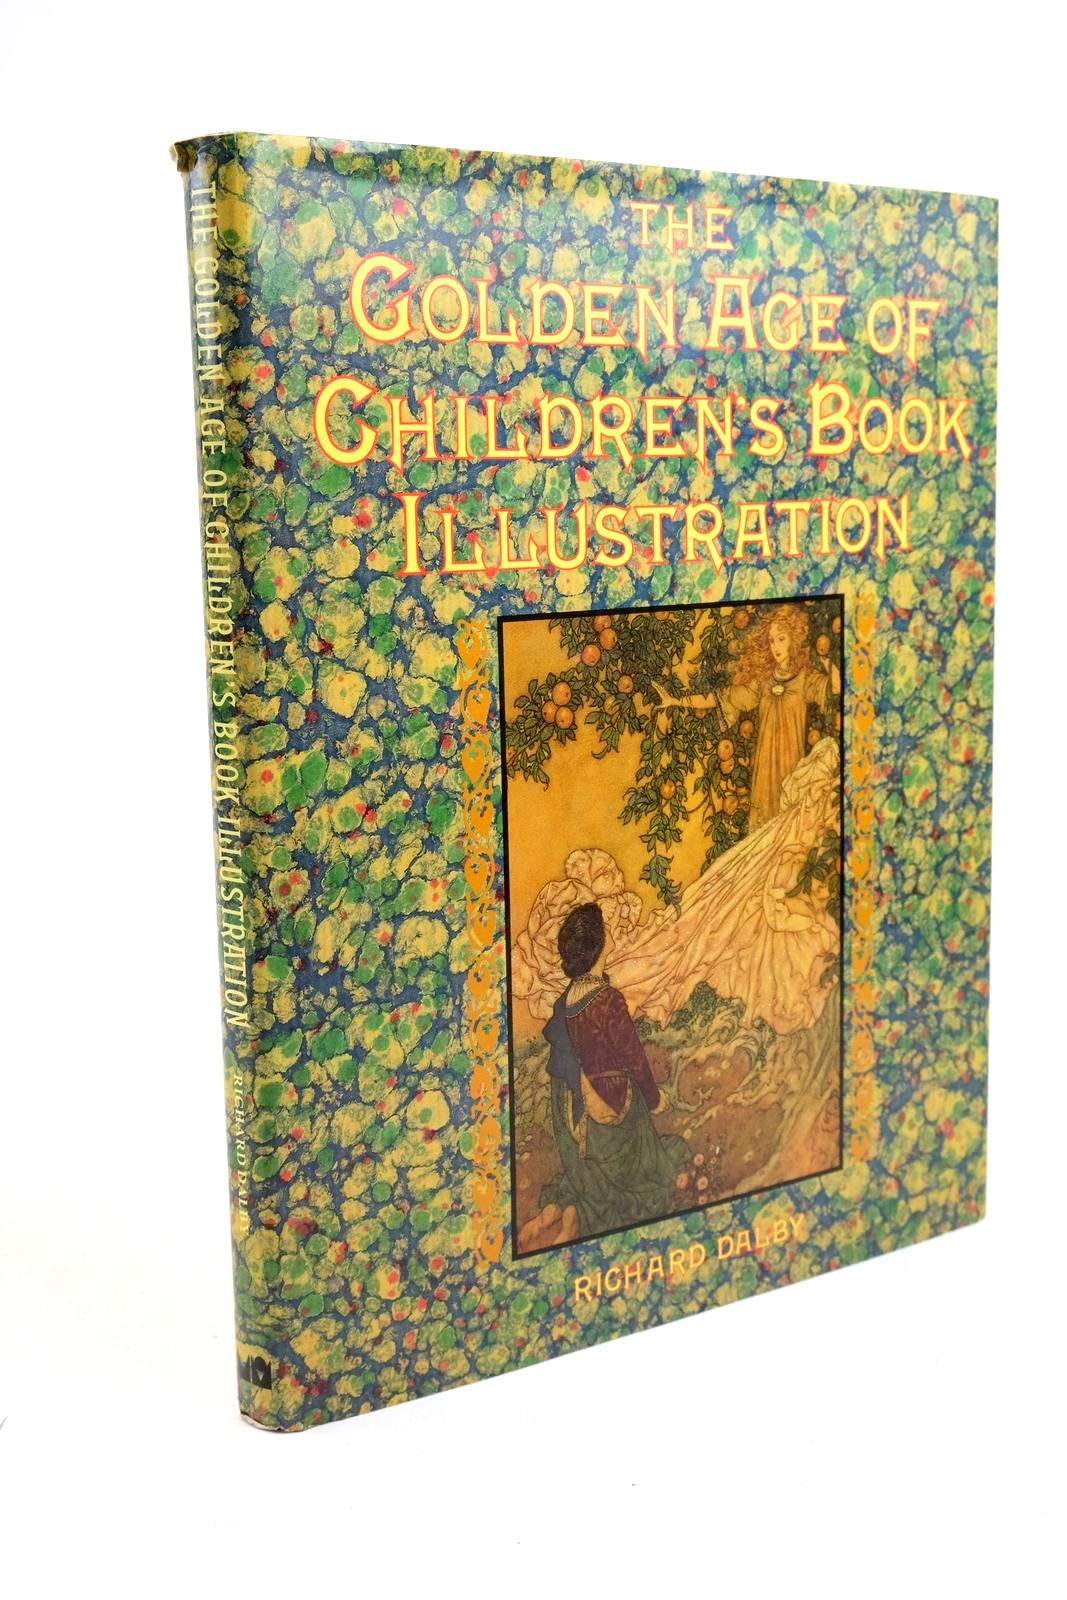 Photo of THE GOLDEN AGE OF CHILDREN'S BOOK ILLUSTRATION written by Dalby, Richard illustrated by Smith, Jessie Willcox Nielsen, Kay Dulac, Edmund Sowerby, Millicent Rackham, Arthur published by Michael O'Mara Books Limited (STOCK CODE: 1321533)  for sale by Stella & Rose's Books